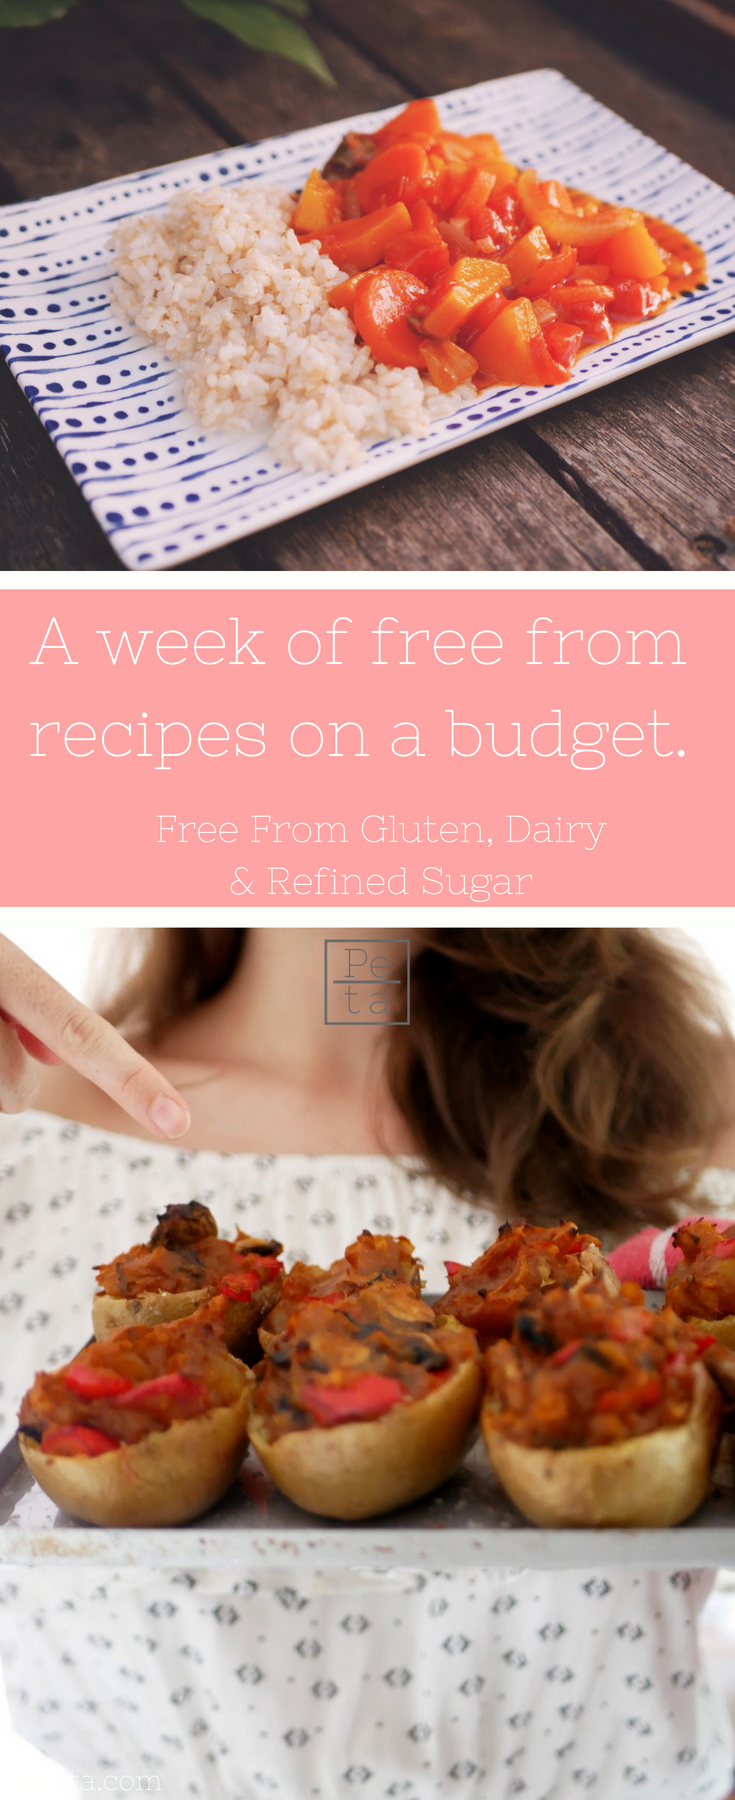 A week of free from recipes on a budget. (1).png